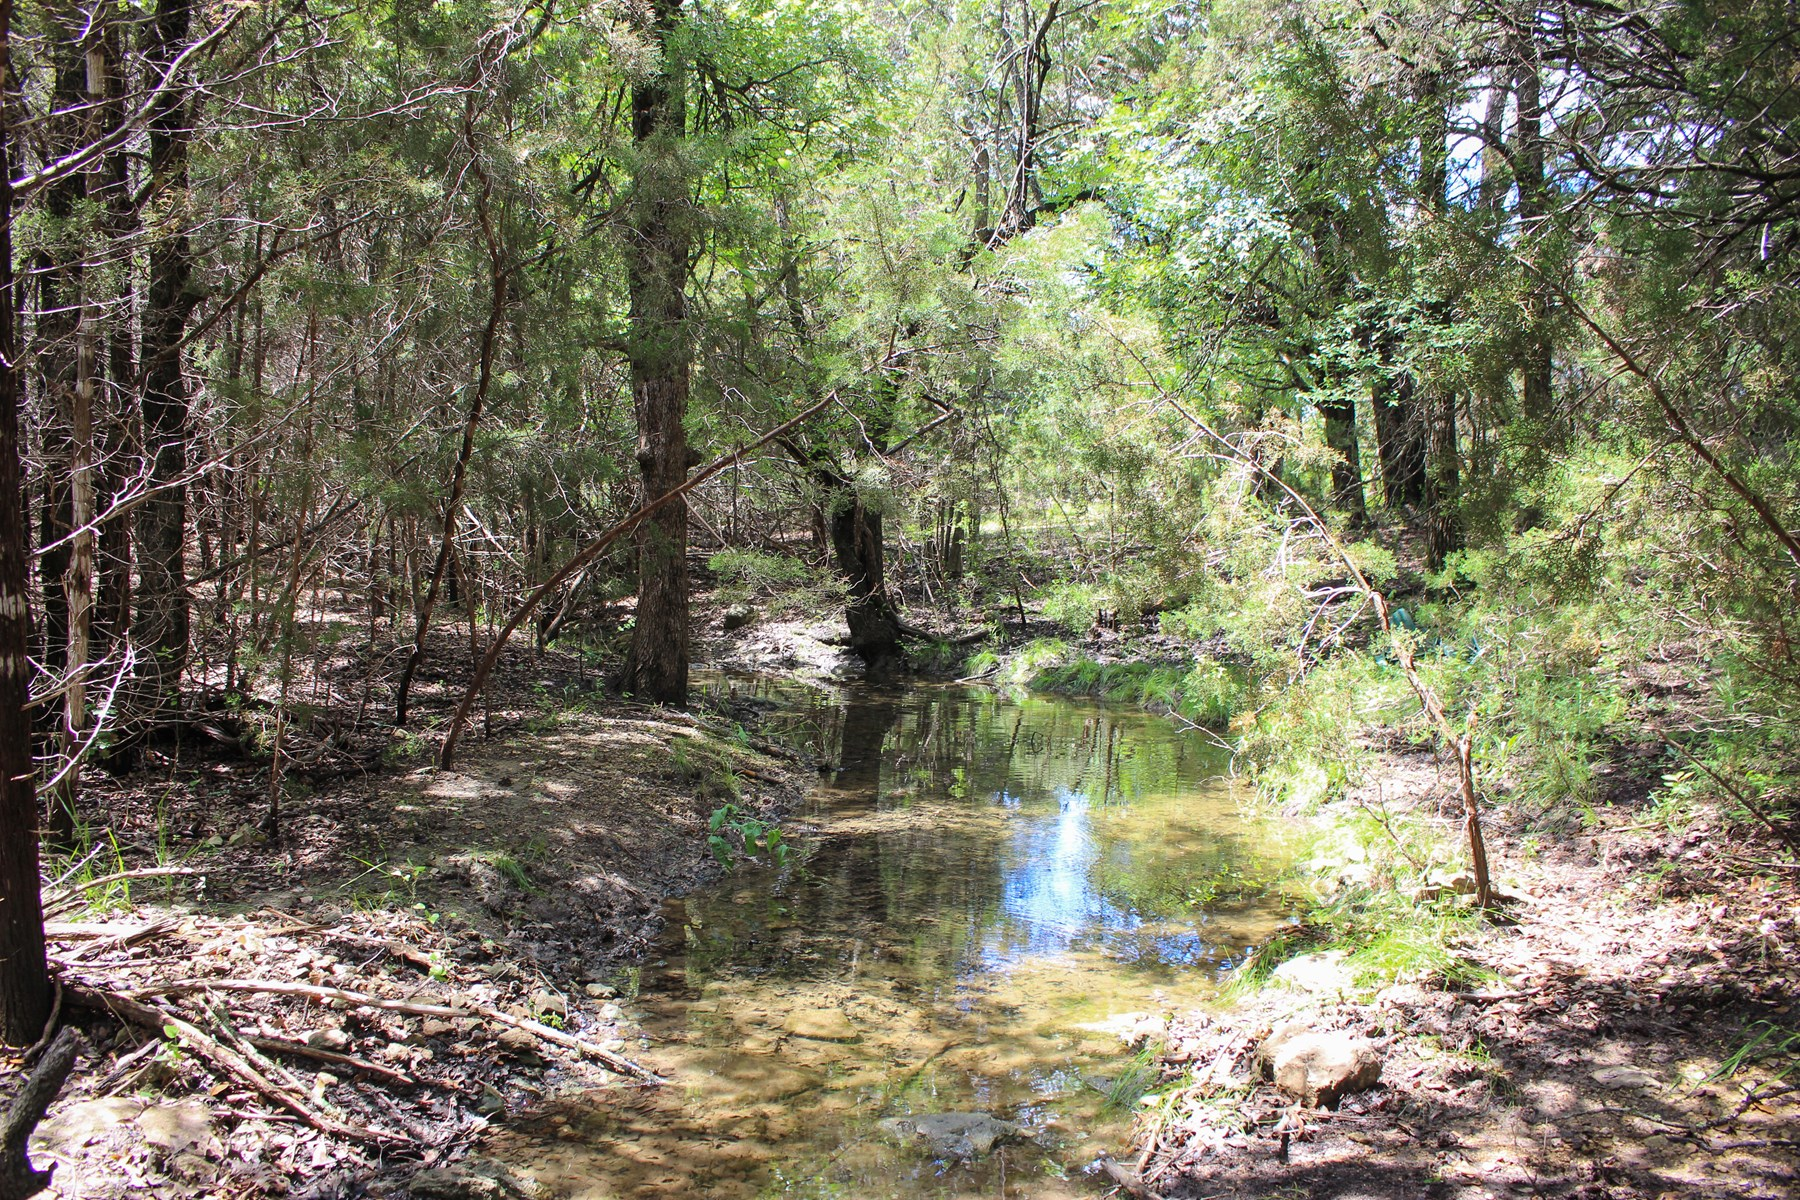 Land for Sale in Central Texas - 215 Acres in Coryell County